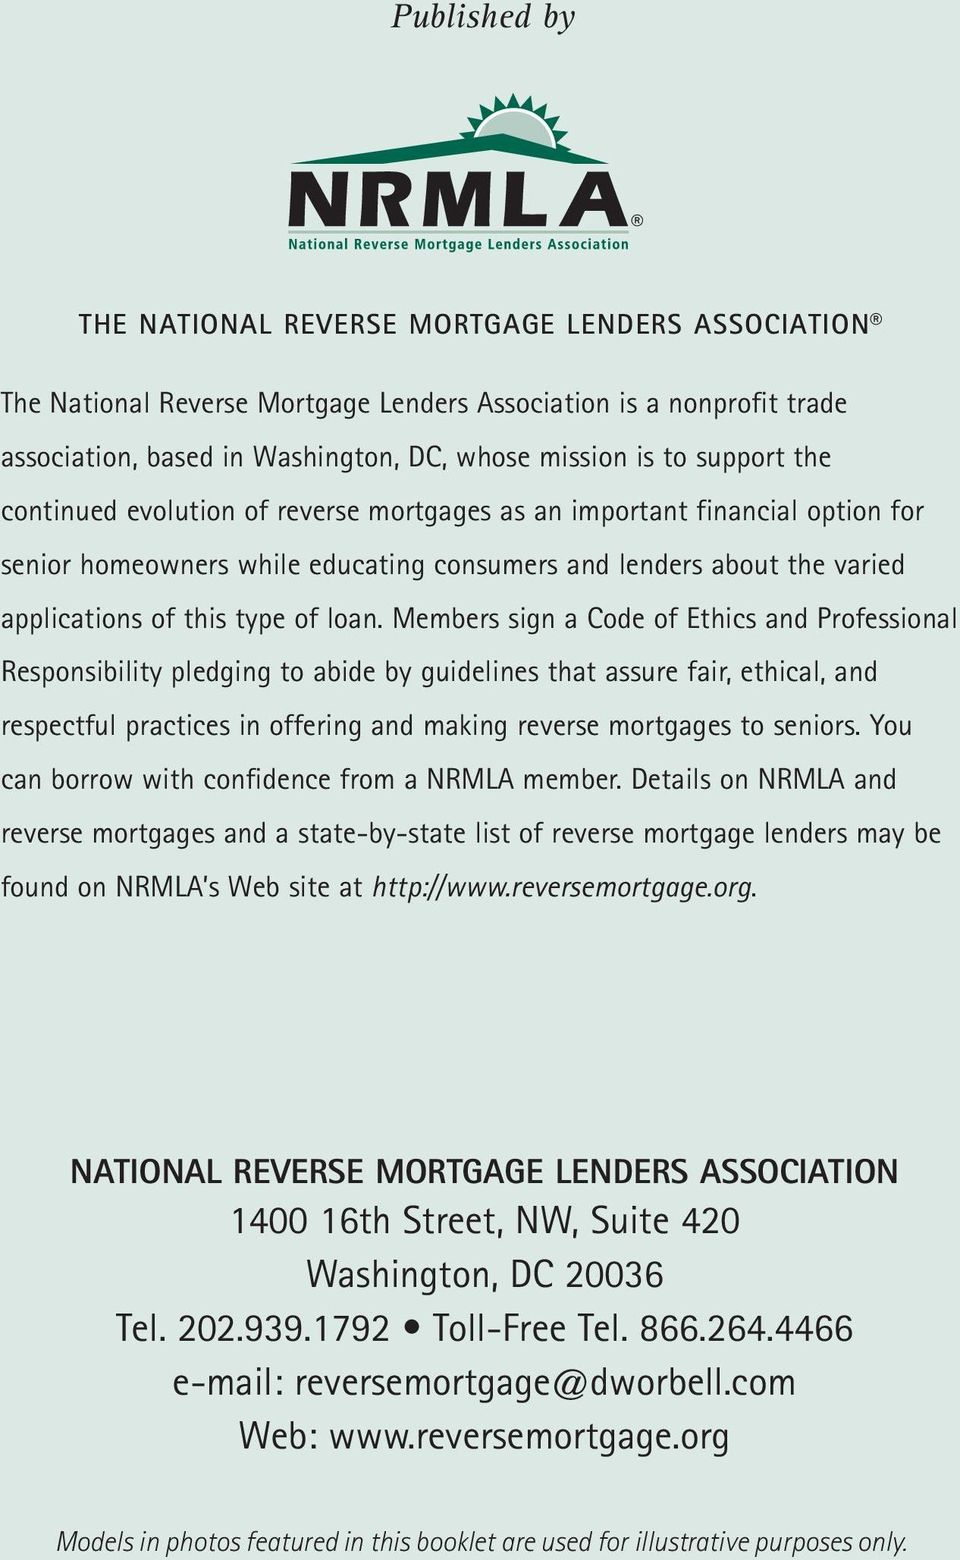 Members sign a Code of Ethics and Professional Responsibility pledging to abide by guidelines that assure fair, ethical, and respectful practices in offering and making reverse mortgages to seniors.